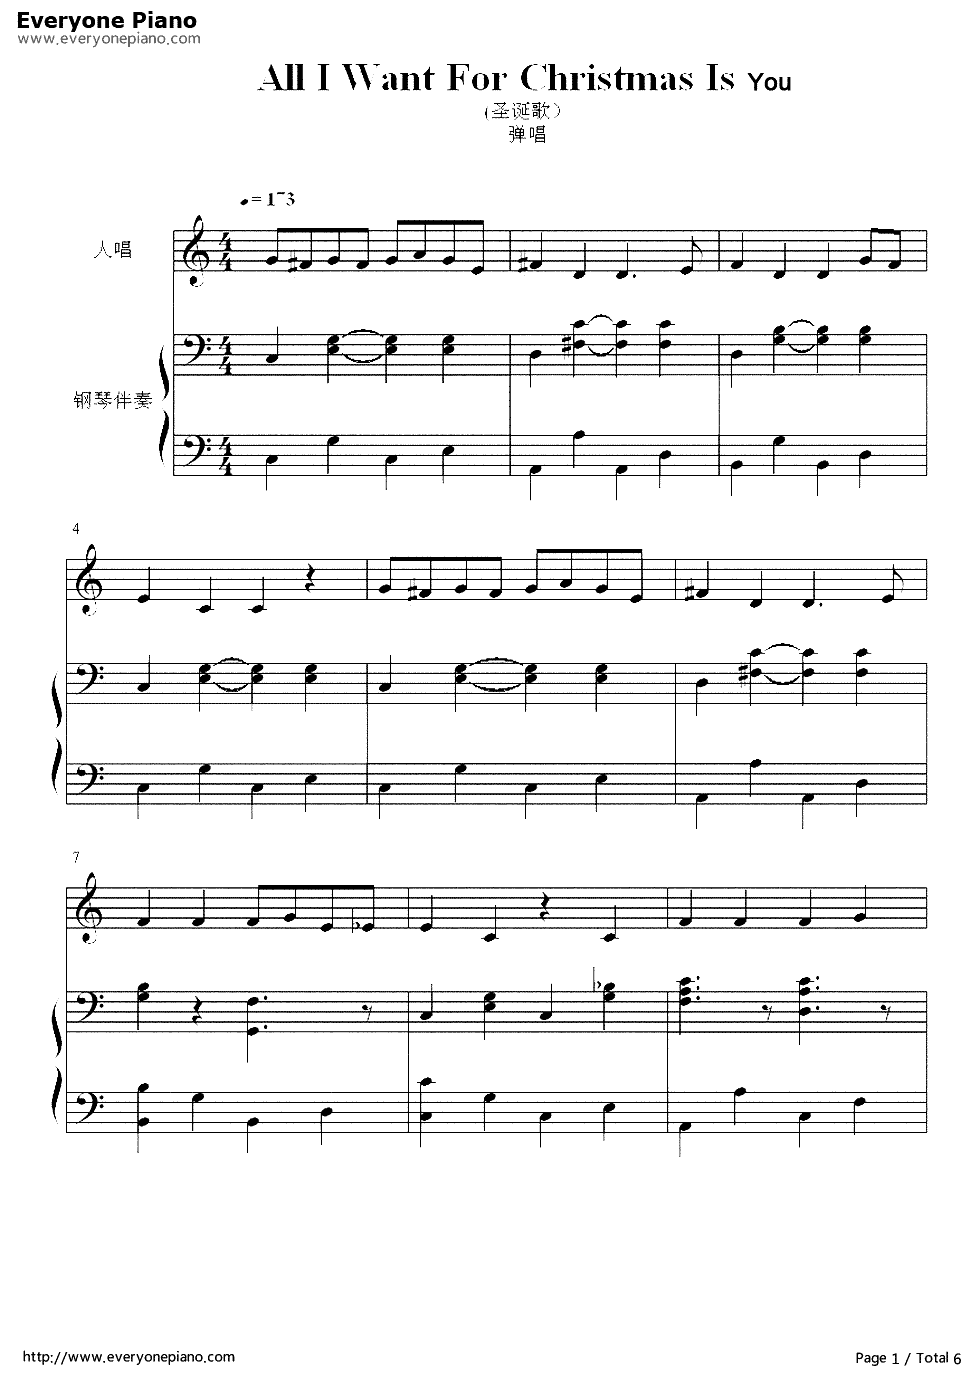 Free All I Want For Christmas Is You Christmas Song Sheet Music Preview 1 Sheet Music Songs Christmas Sheet Music